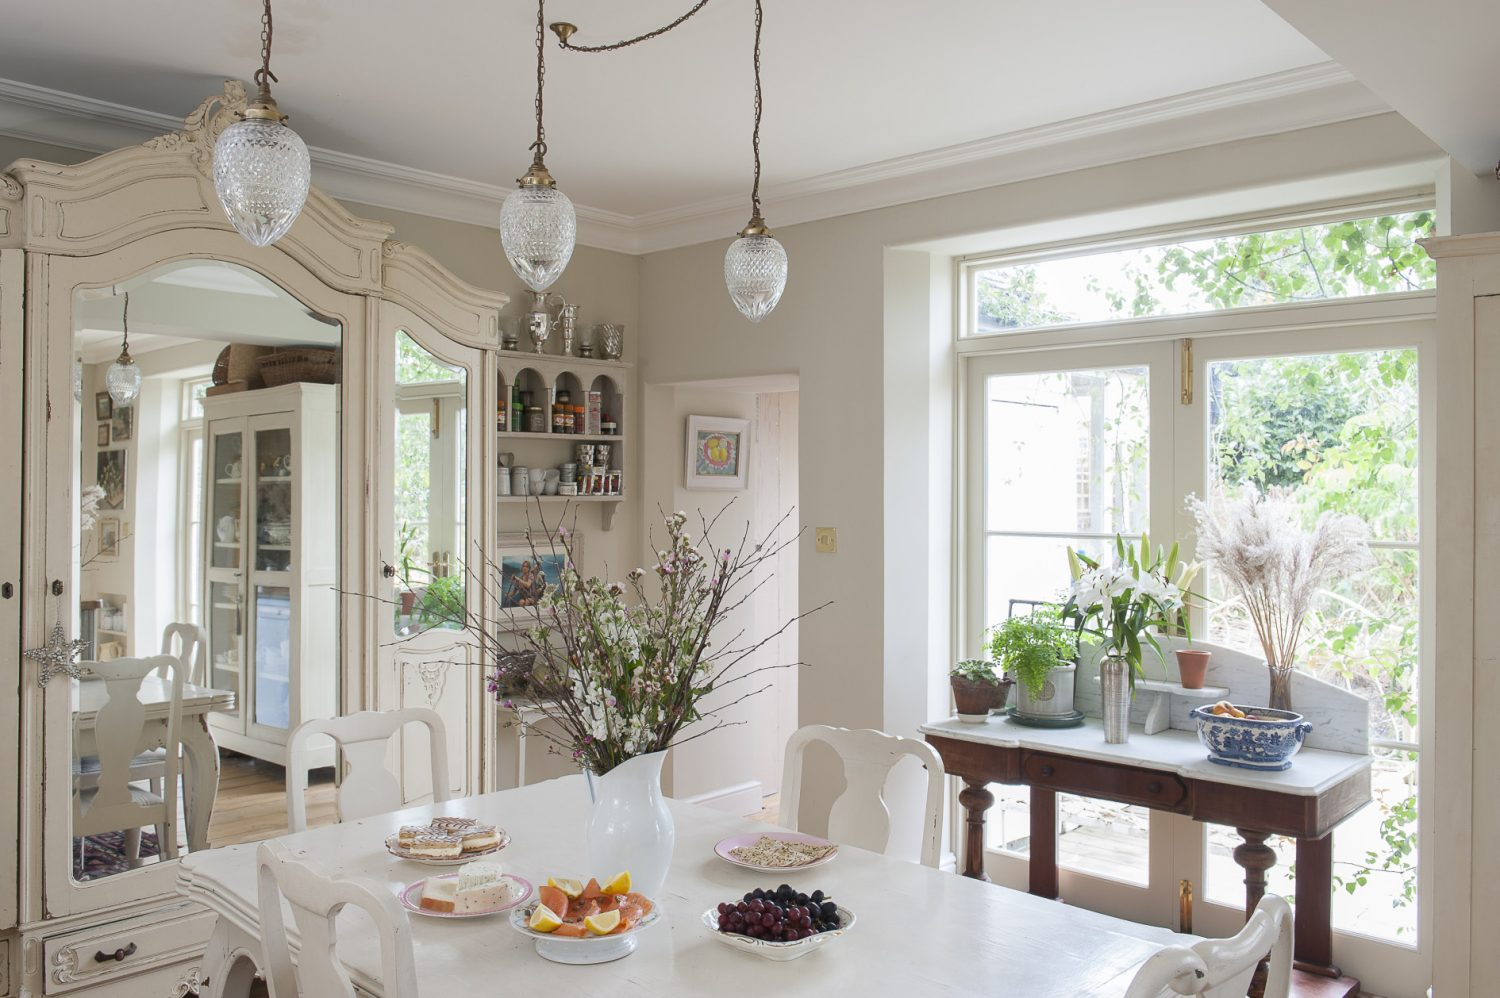 The large open-plan kitchen is a mix of French and Scandinavian style as well as being eminently practical; recycling bins are hidden under the kitchen counter and a double butler sink occupies the central island